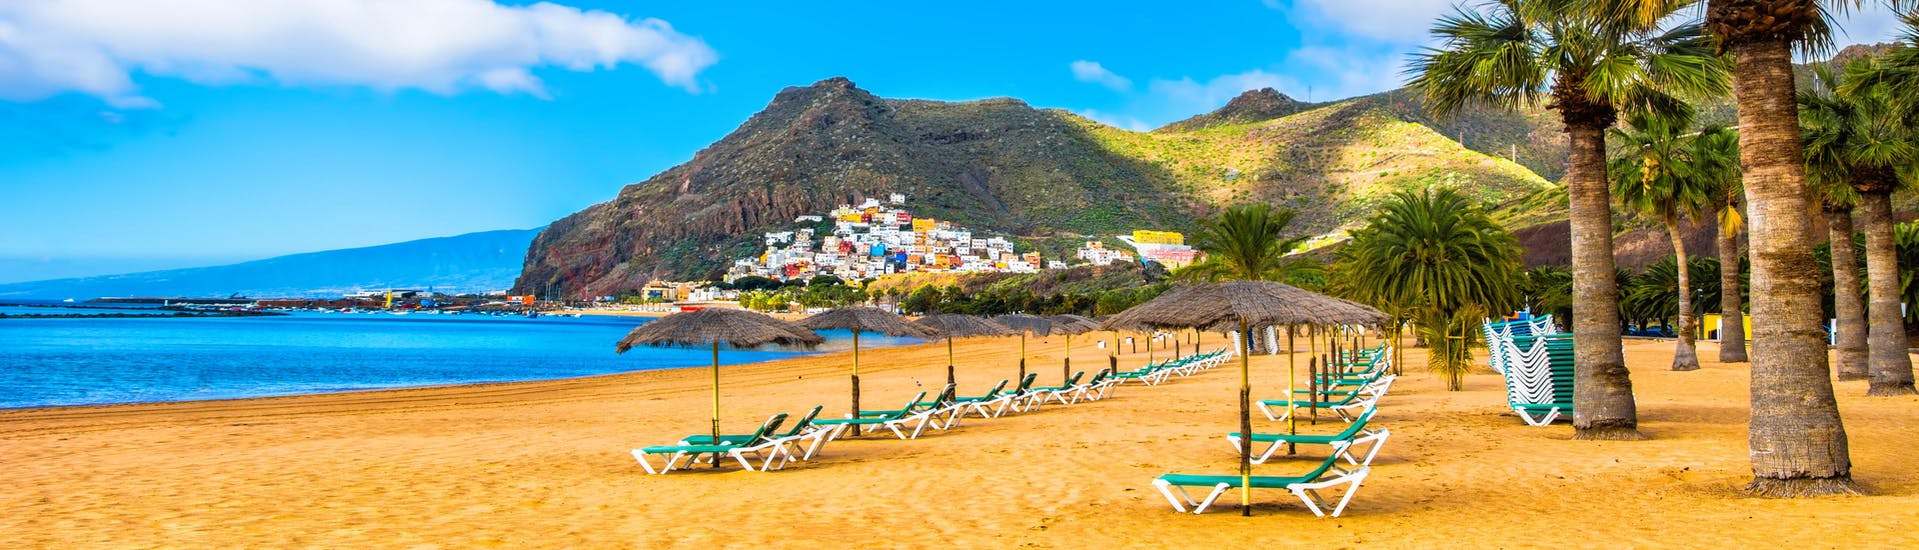 An image of Las Teresitas beach where people can raide a jet ski or do other water sports activities in Tenerife.